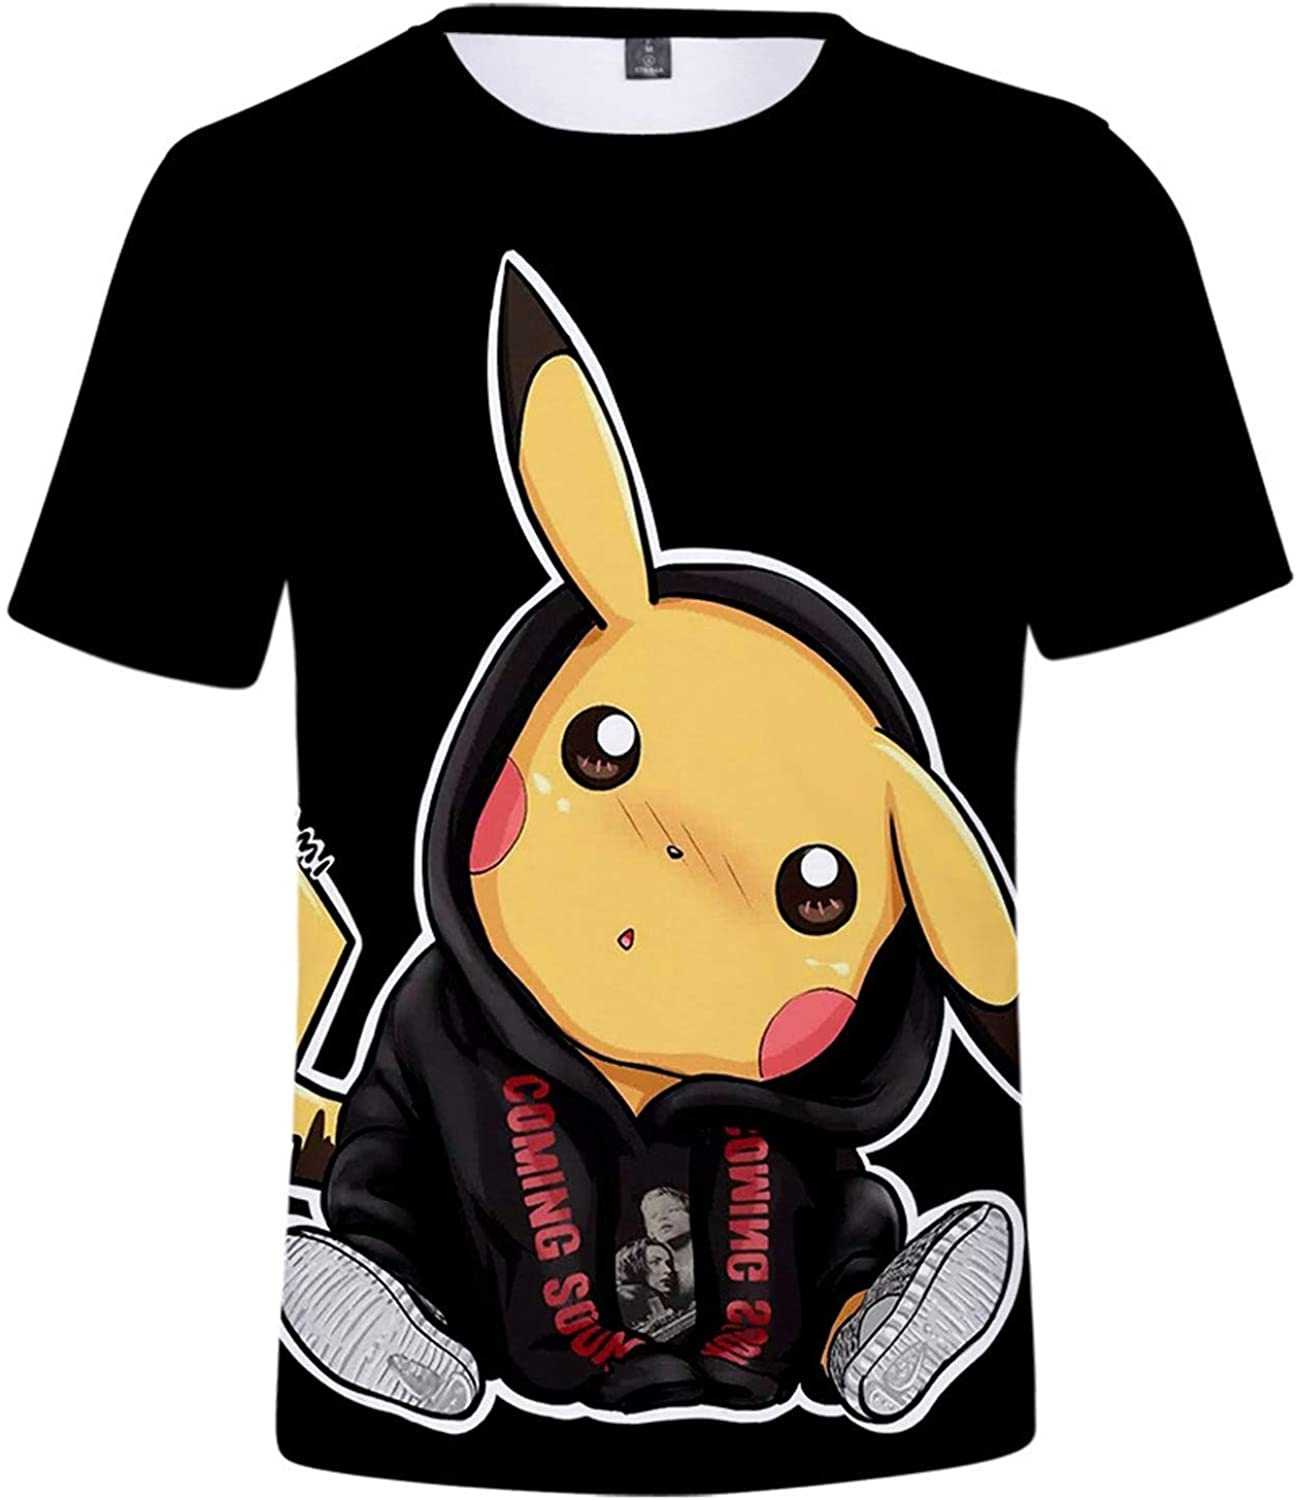 FashionLee Little Kids Pikachu 3D Print Short Sleeve T Shirts-Pocket Monster Round Neck T-Shirts for Boys Girls(2T-12Y)